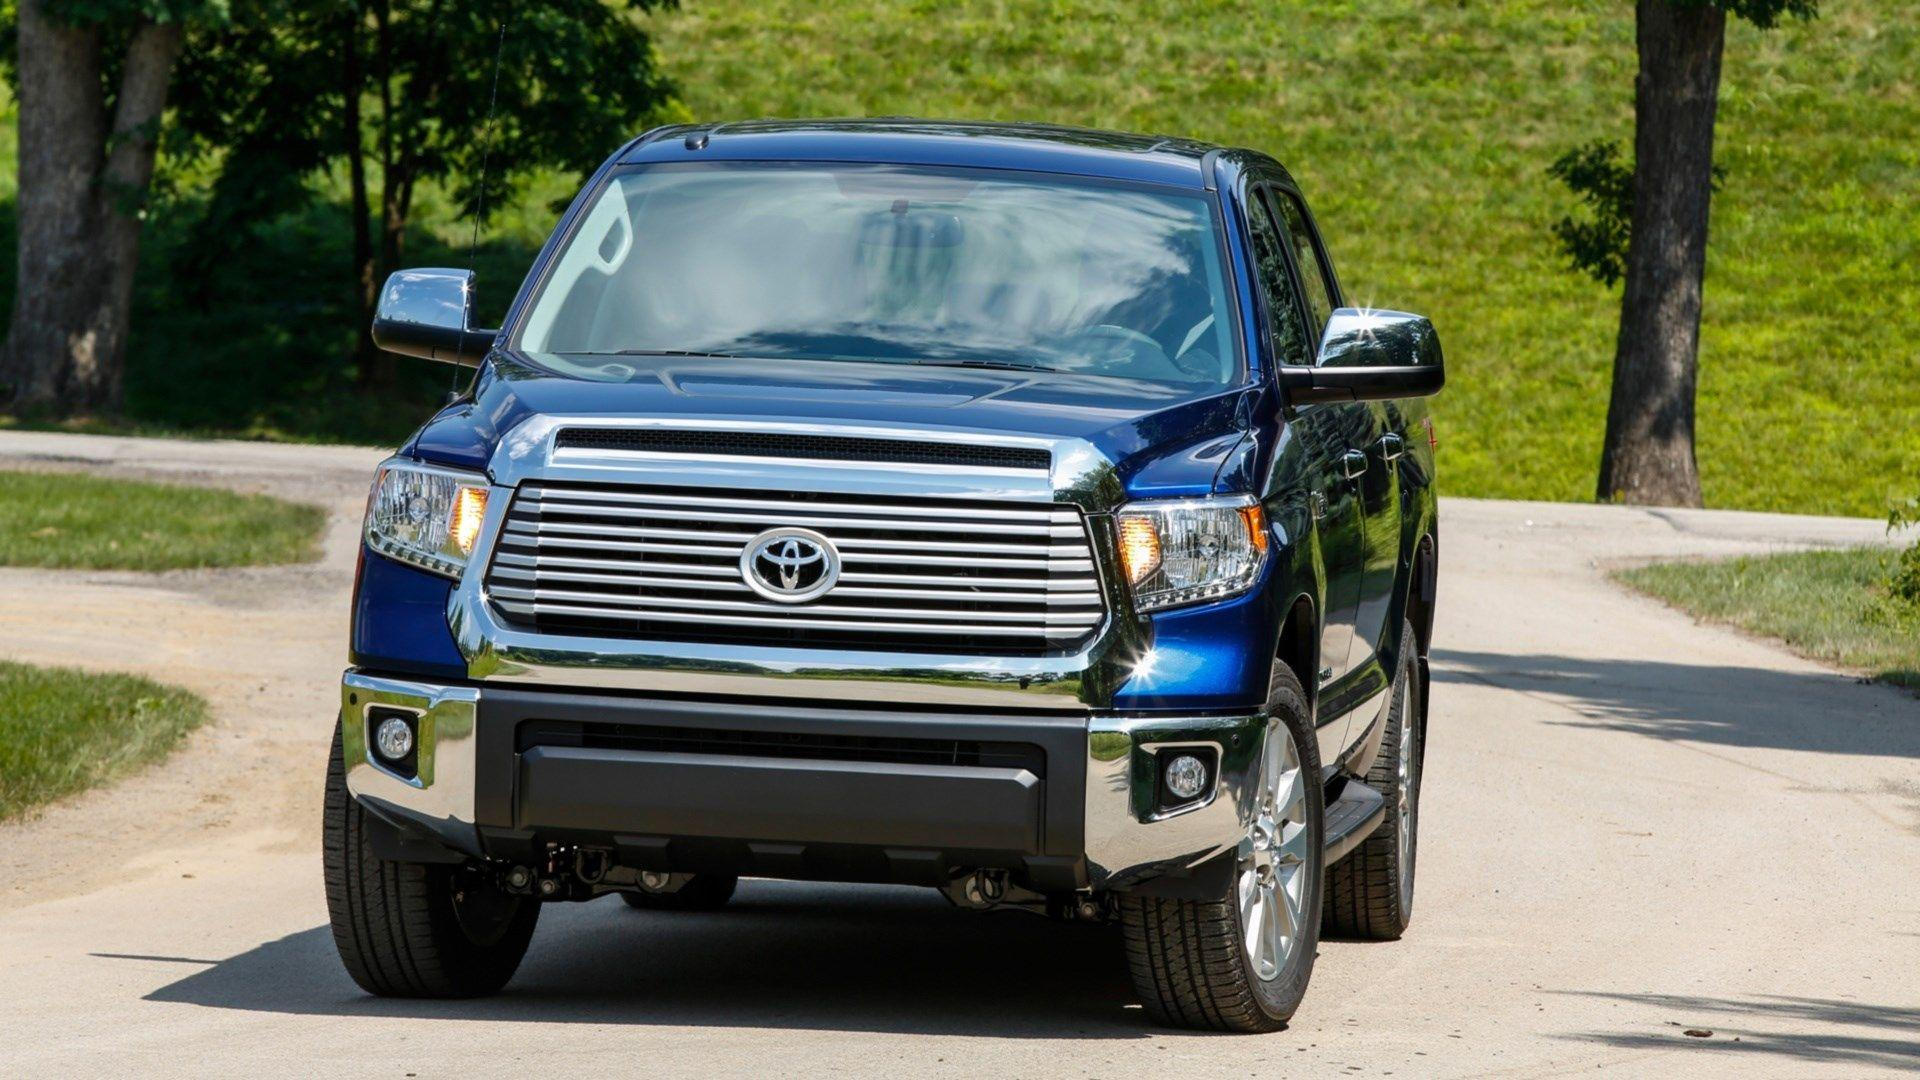 free high resolution wallpapers toyota tundra